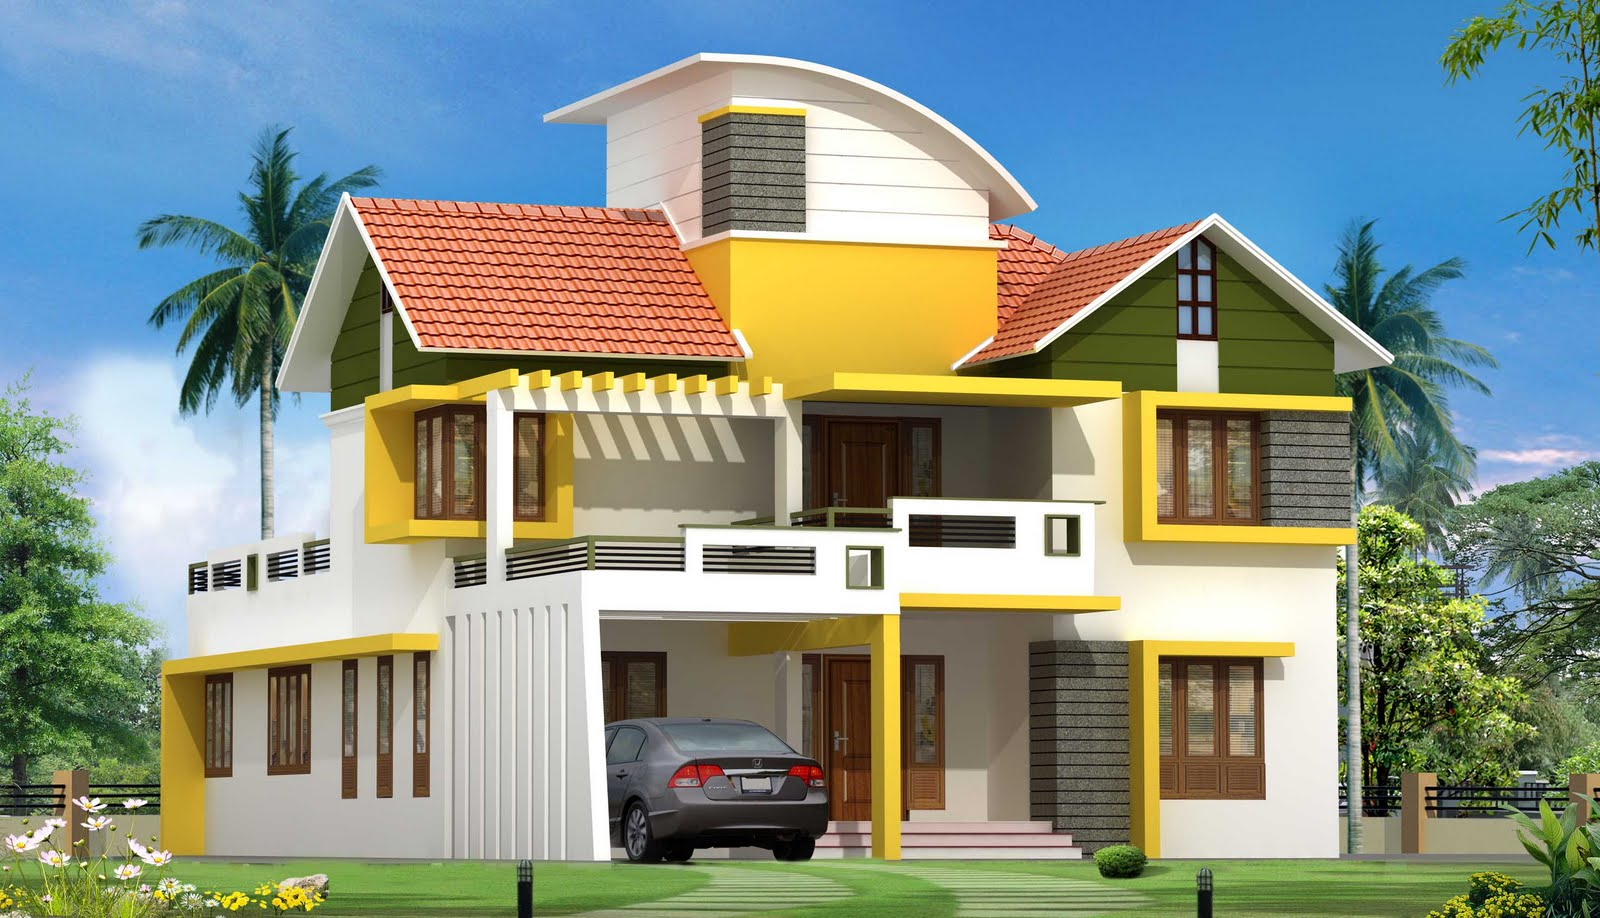 Colorful House colorful house design plan wallpaper | download cool hd wallpapers